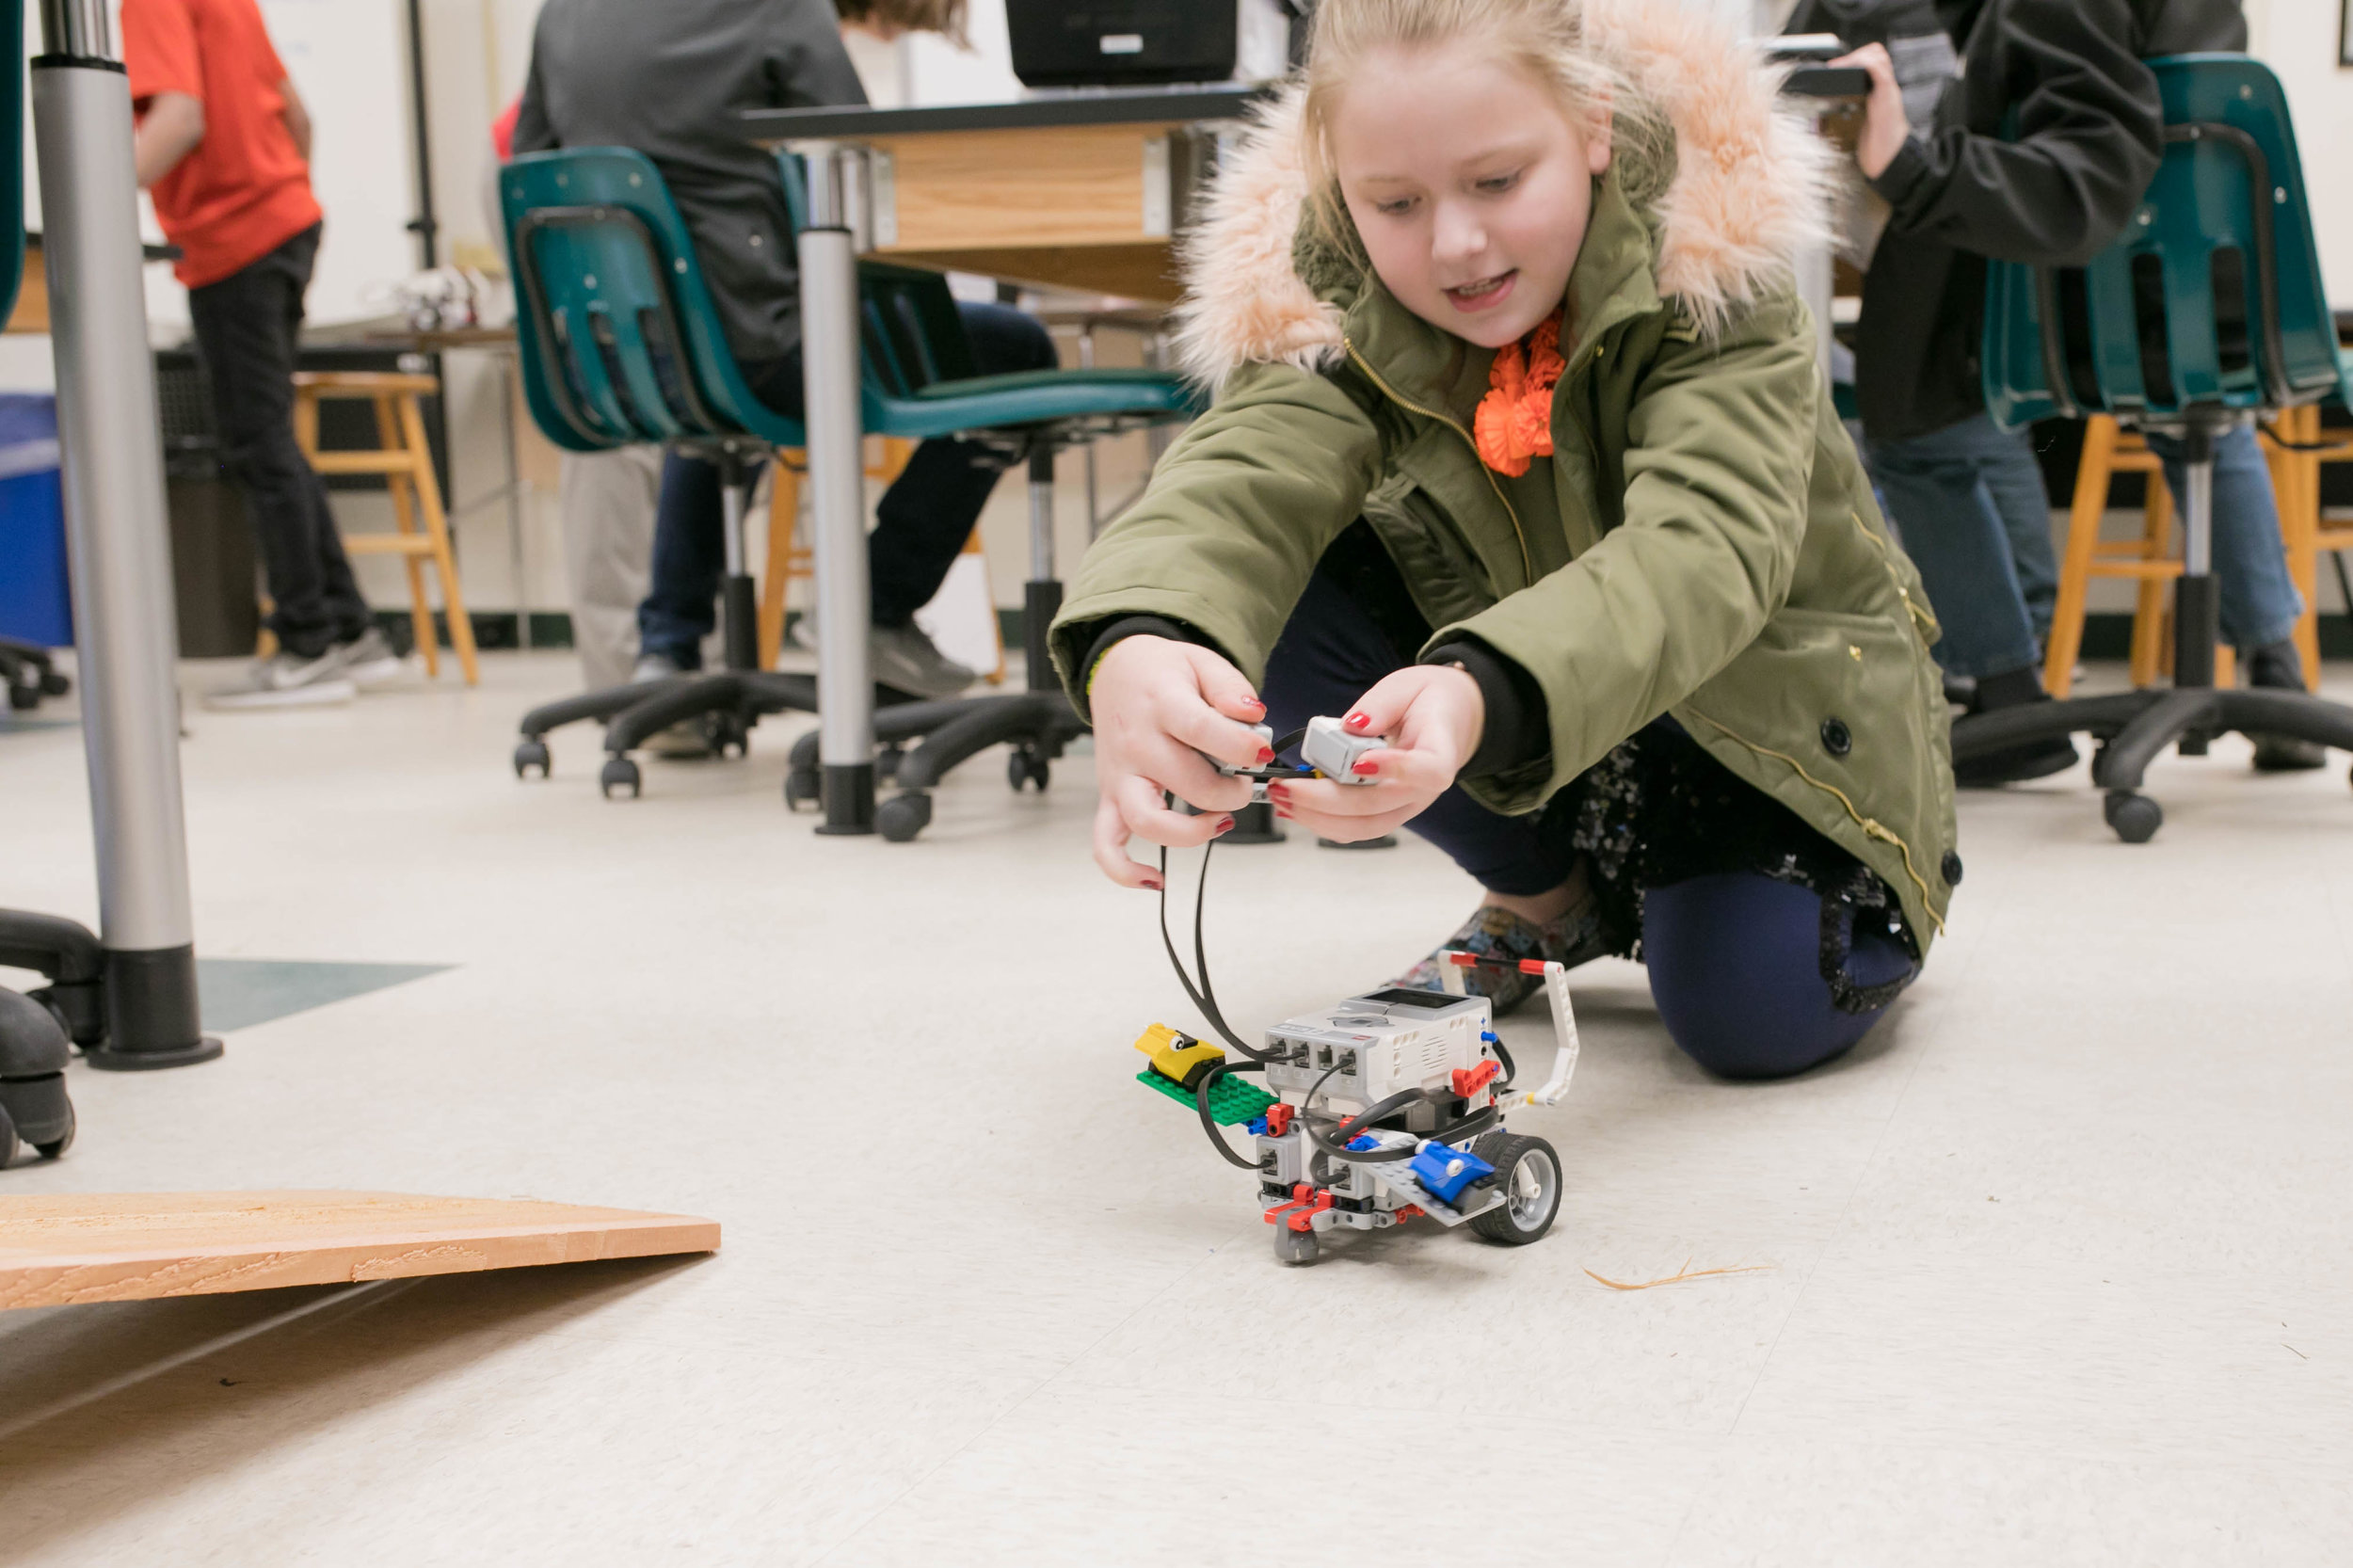 ravenscroft school students work with lego robotics in the school's middle school engineering class. Photo by Laura B. Hunter Photography